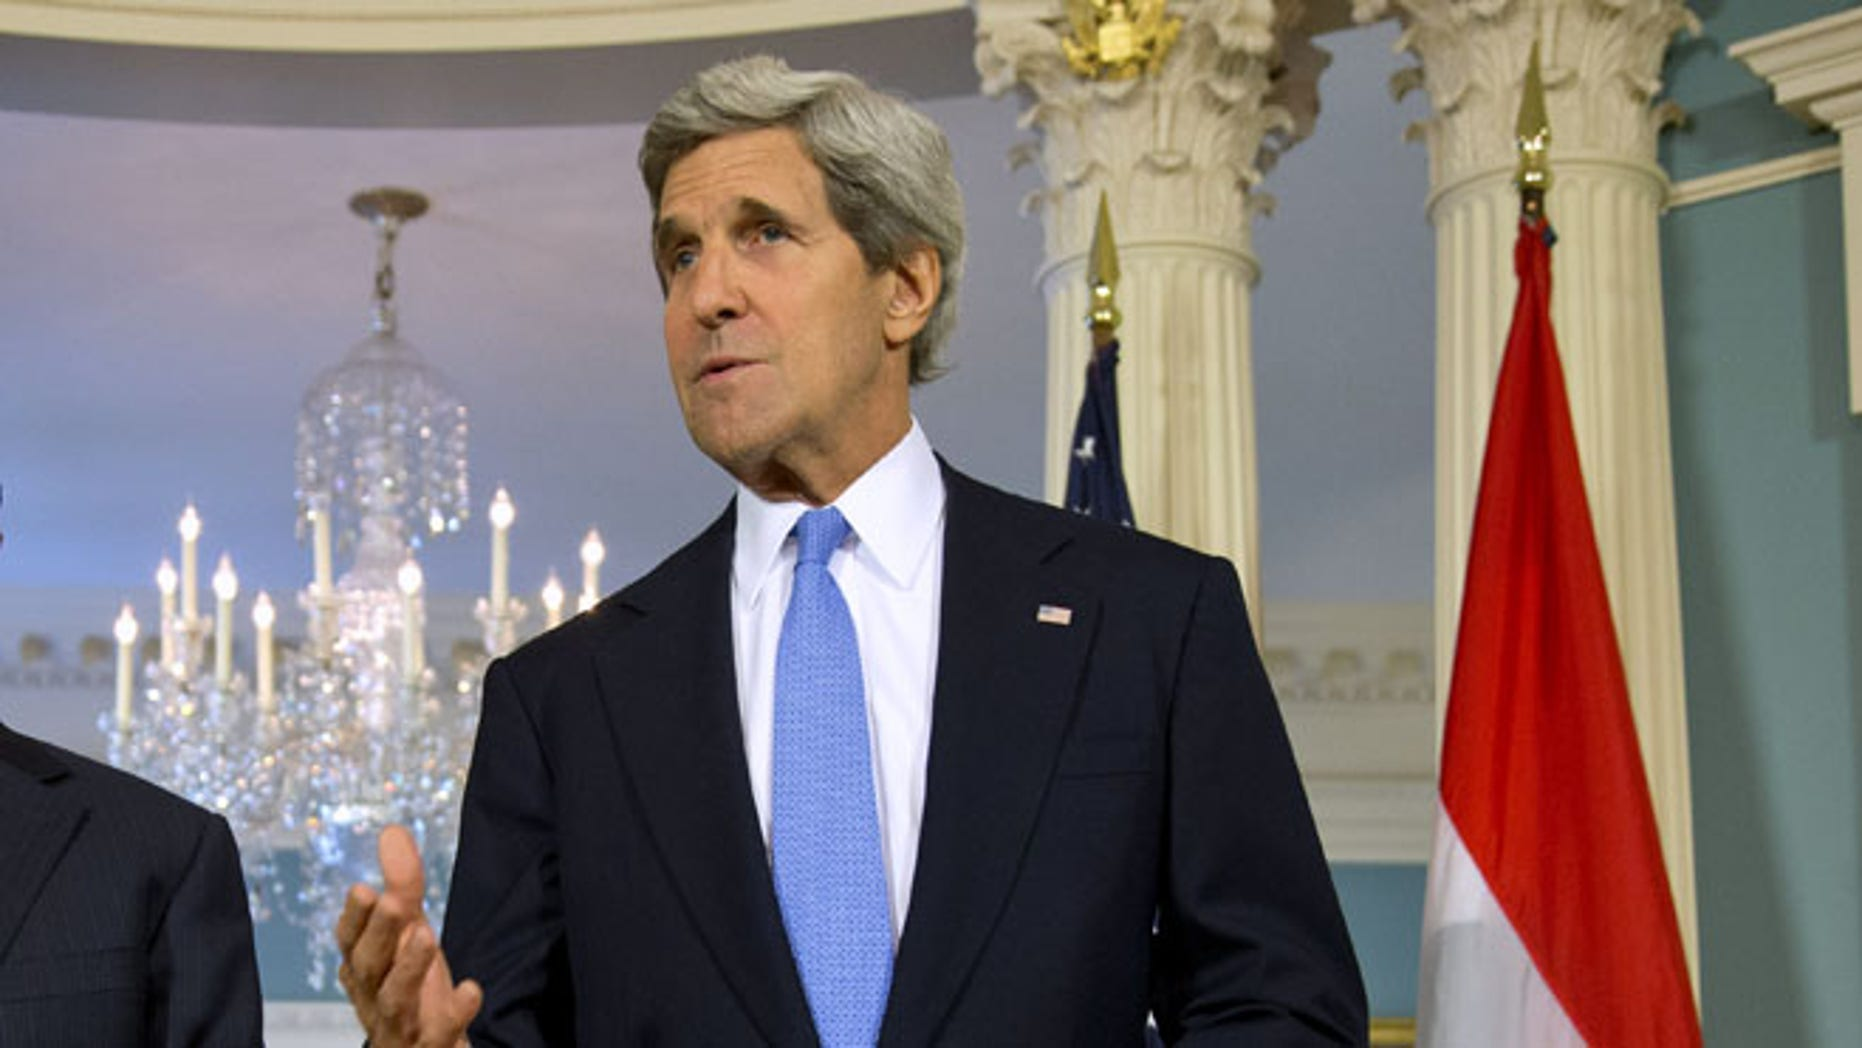 FILE: July 29, 2013: Secretary of State John Kerry at the State Department in Washington, D.C.